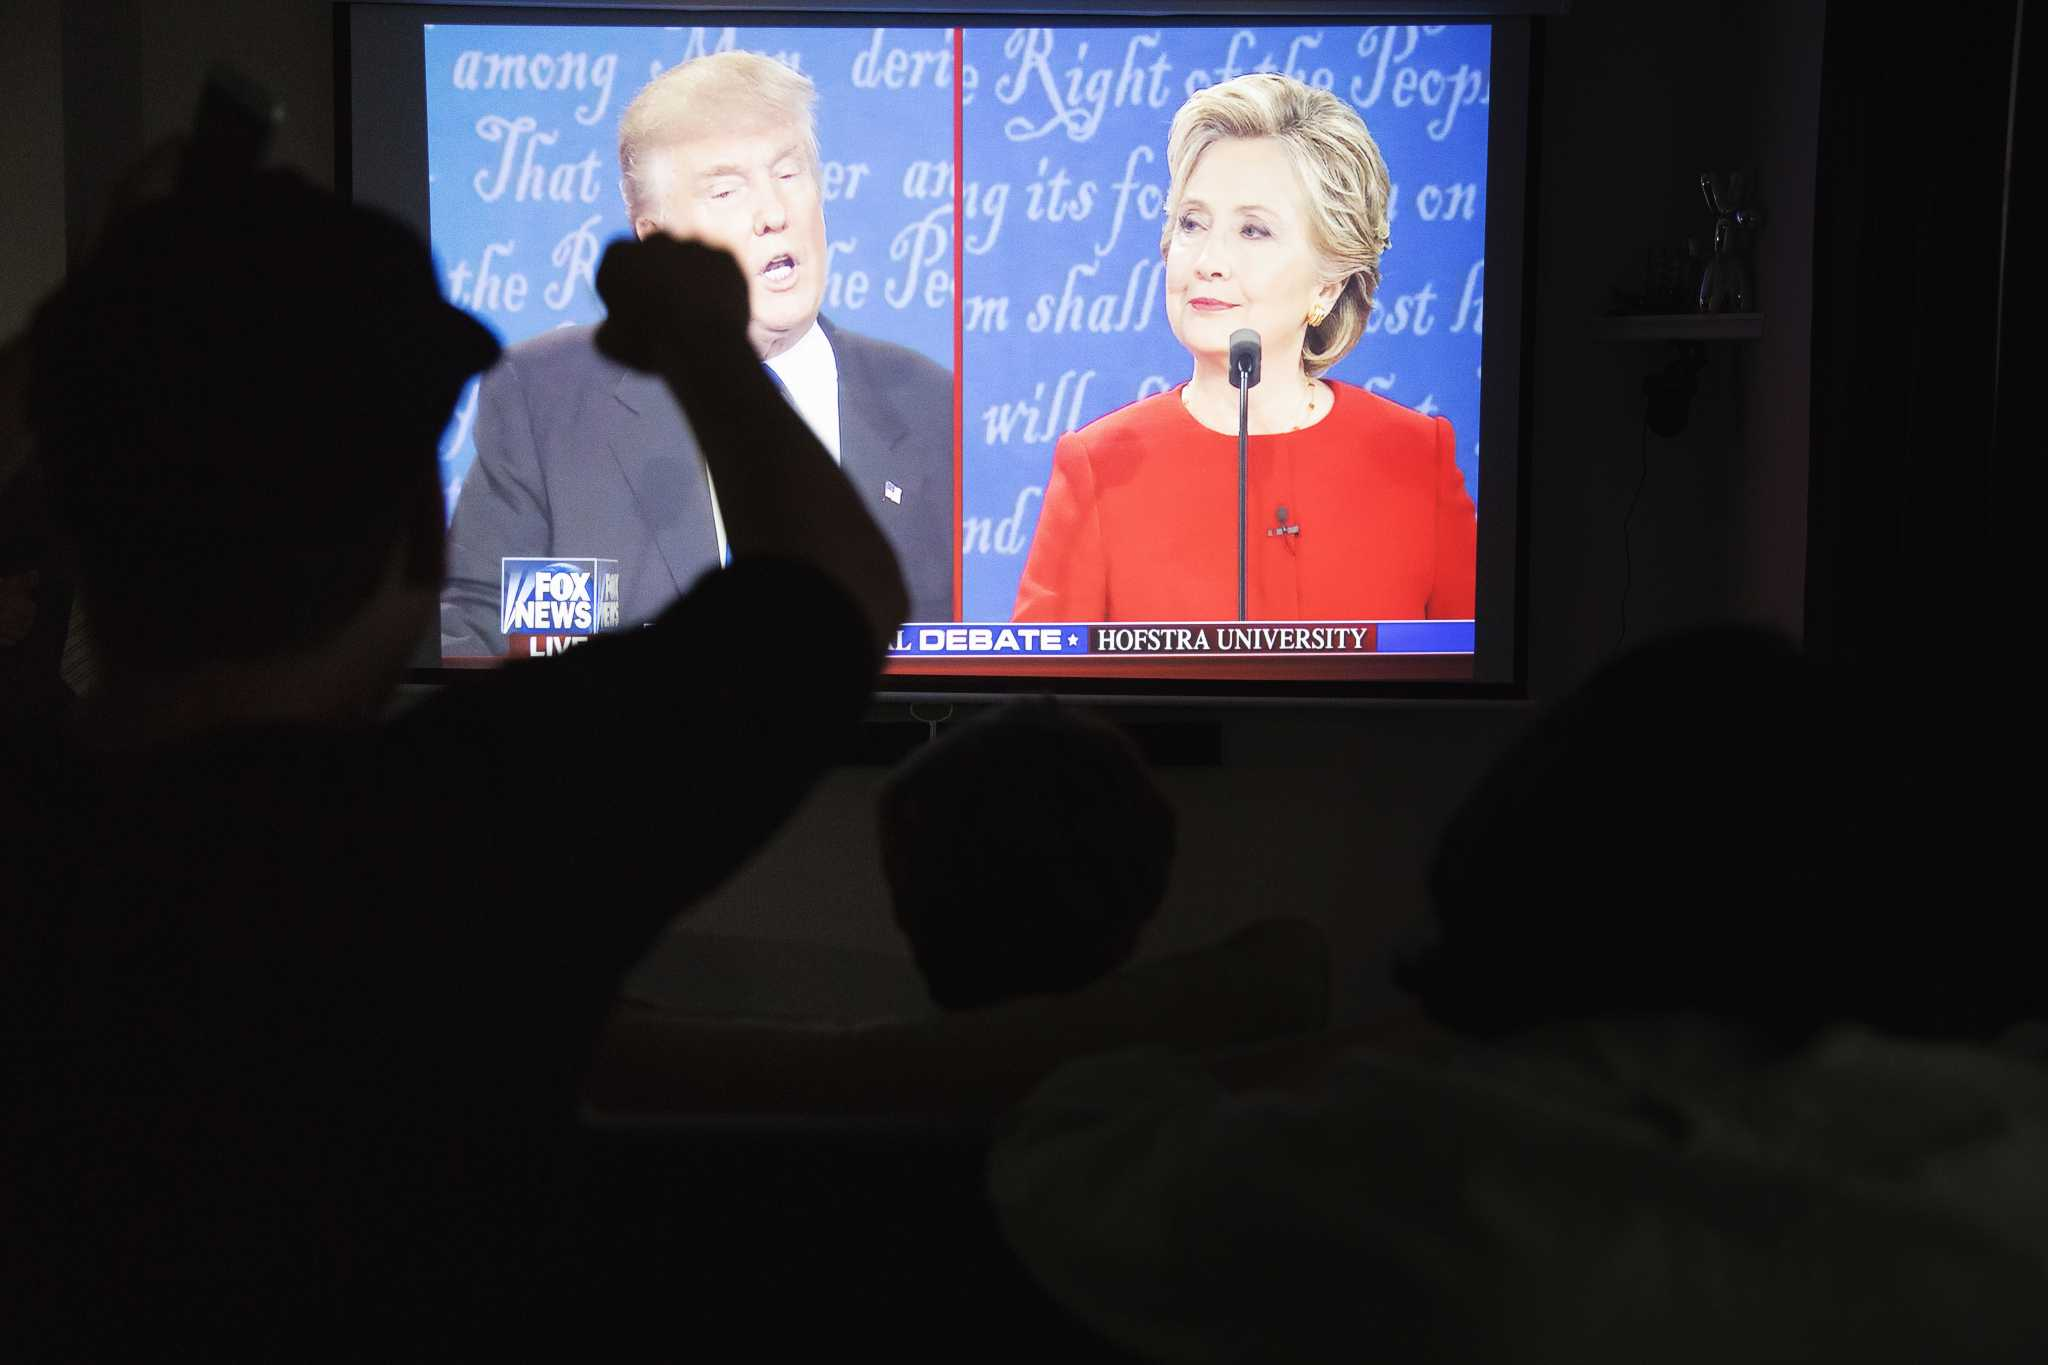 Watch parties hunker down for first debate